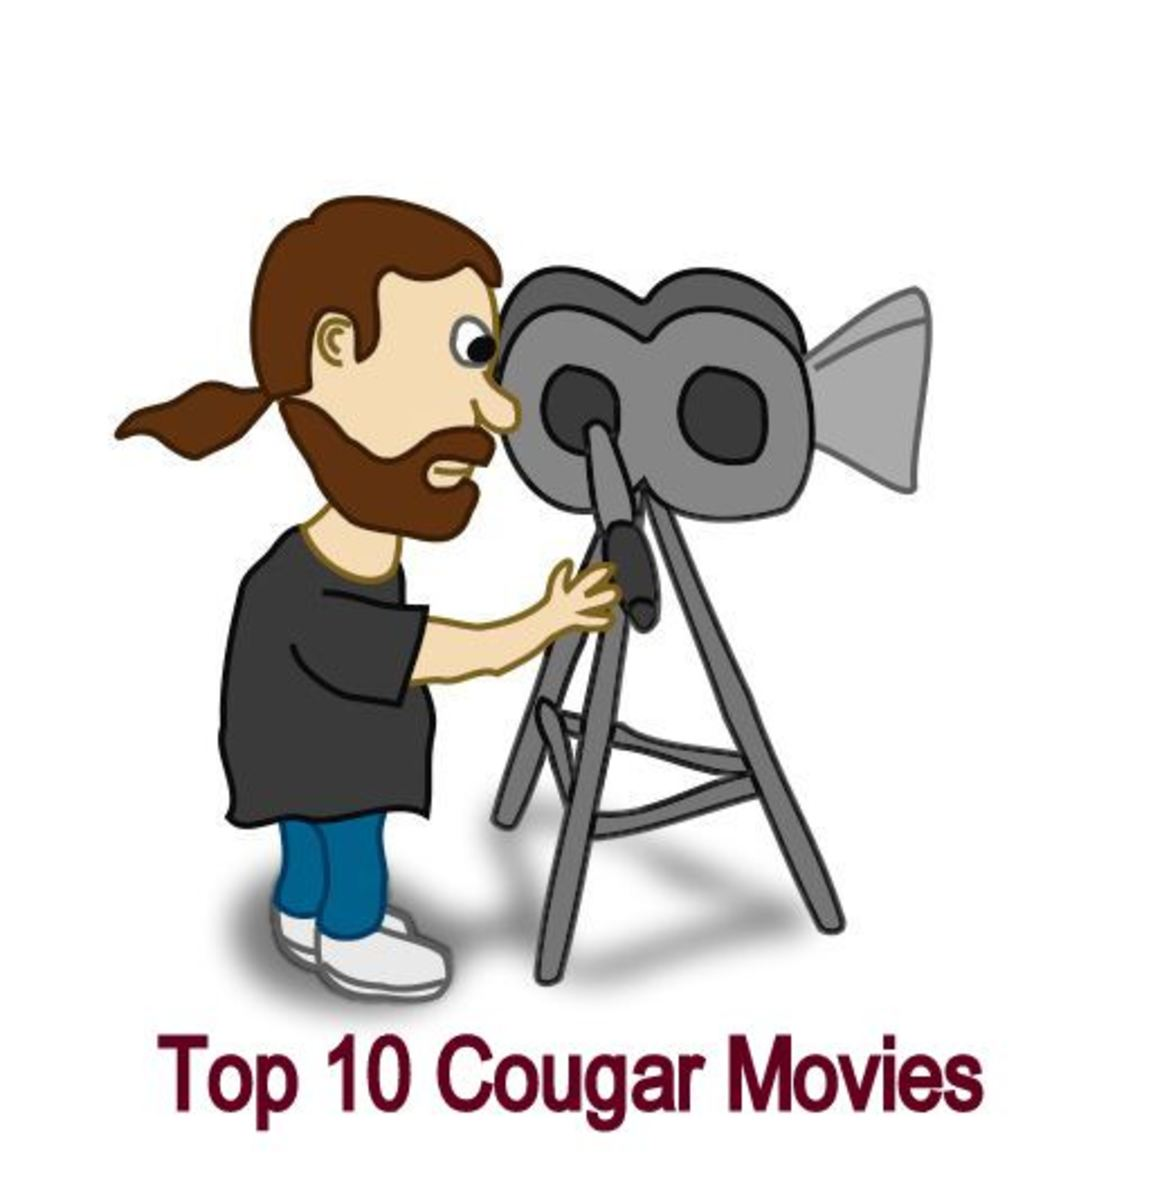 Top 10 Popular Movies with Cougar Characters - Best Films on Older Woman and Younger Man Relationships